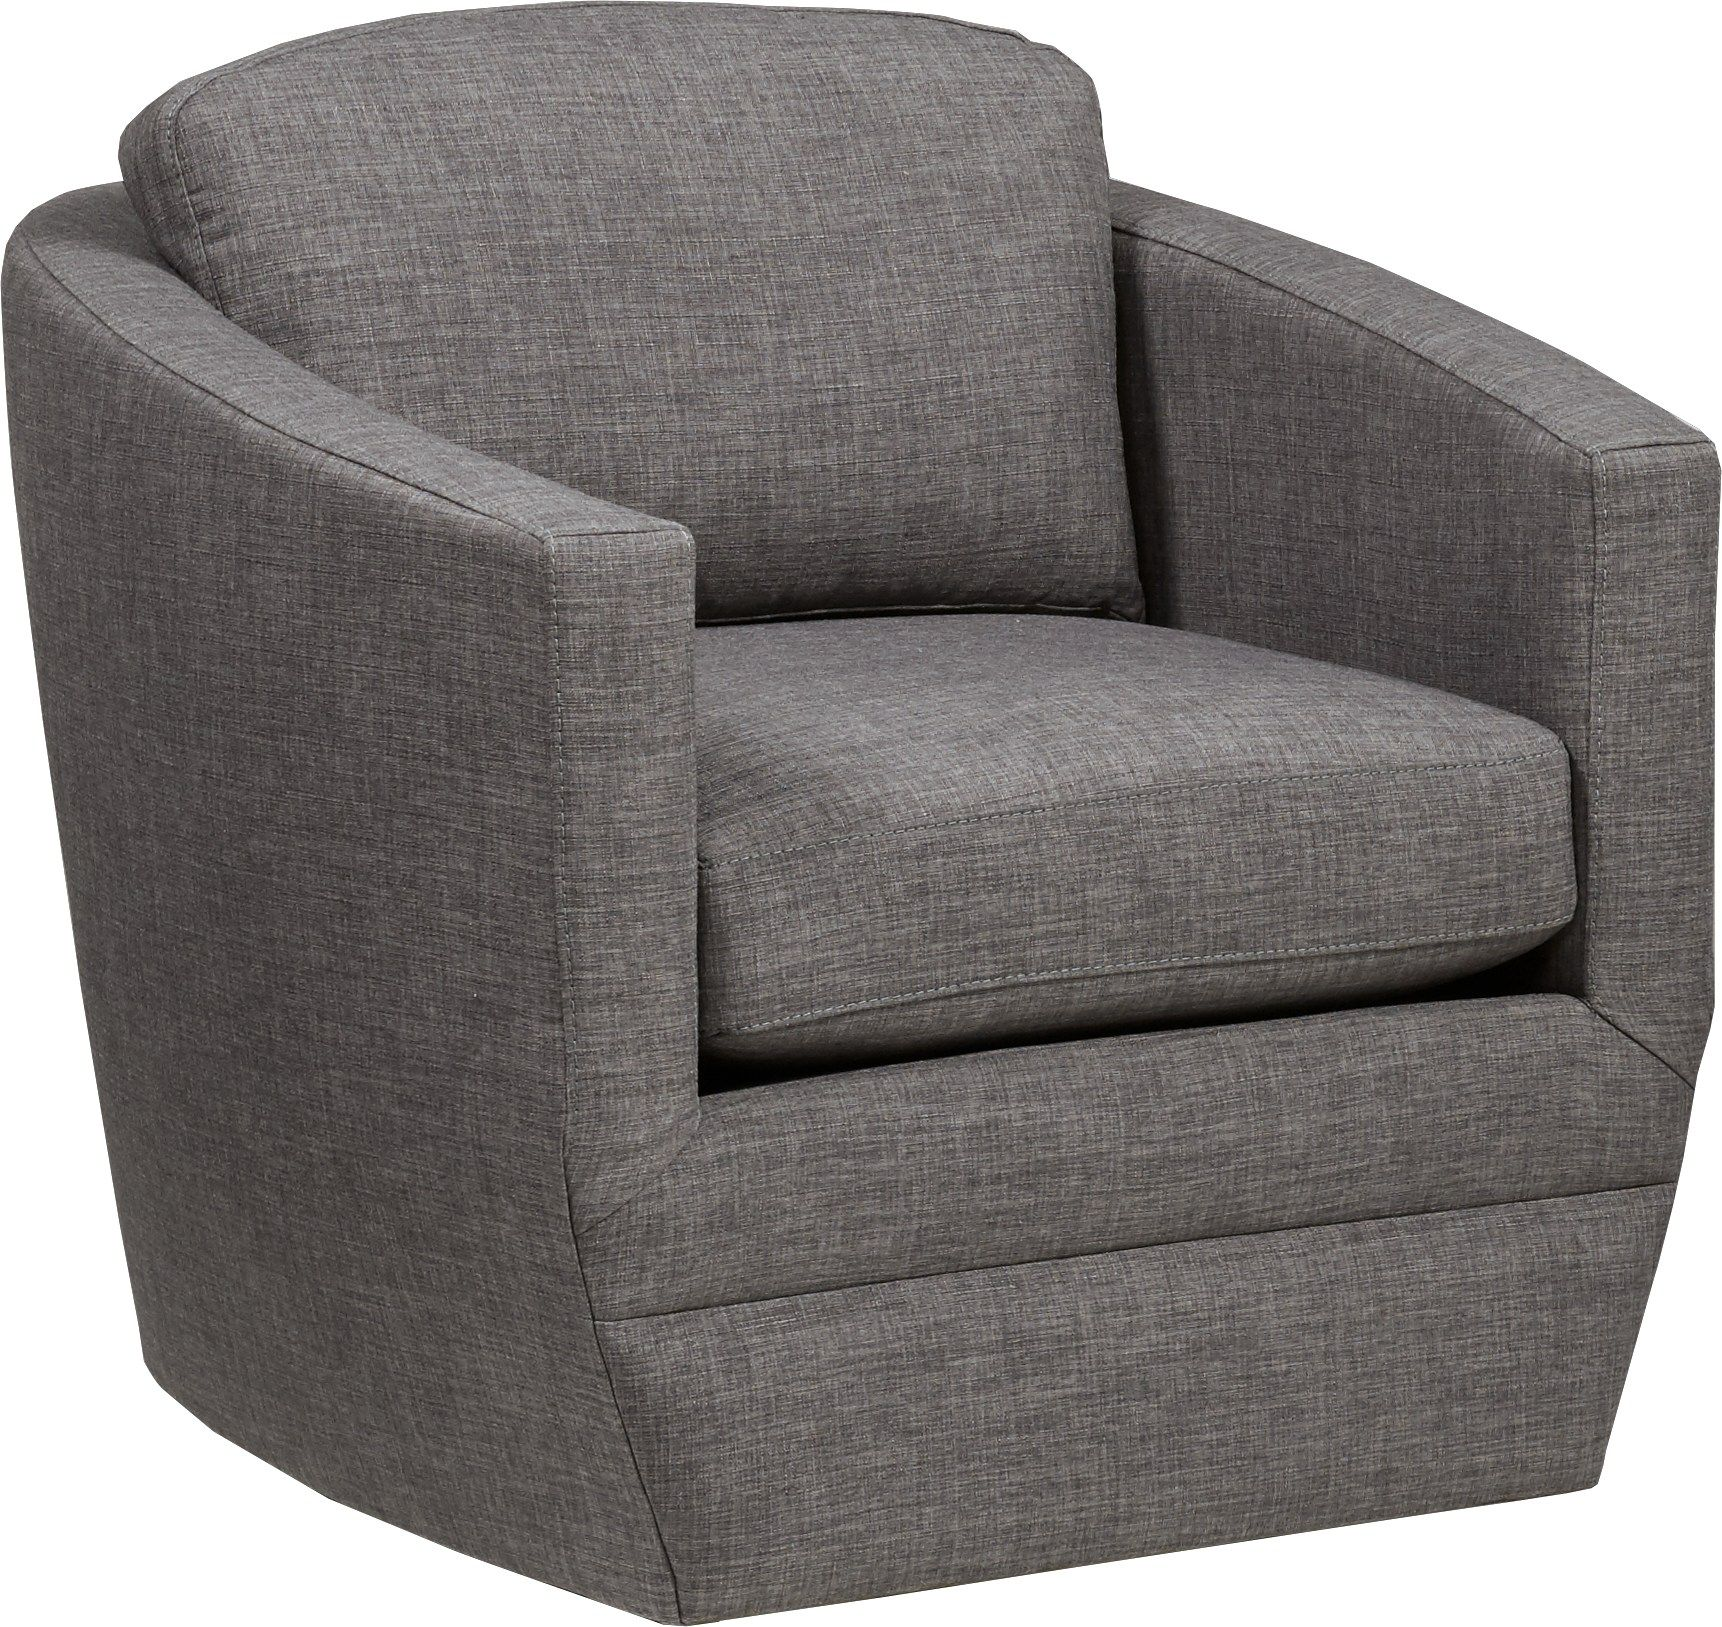 Harbour City San Marino Dark Gray Swivel Chair Grey Swivel Chairs Upholstered Swivel Chairs Chair